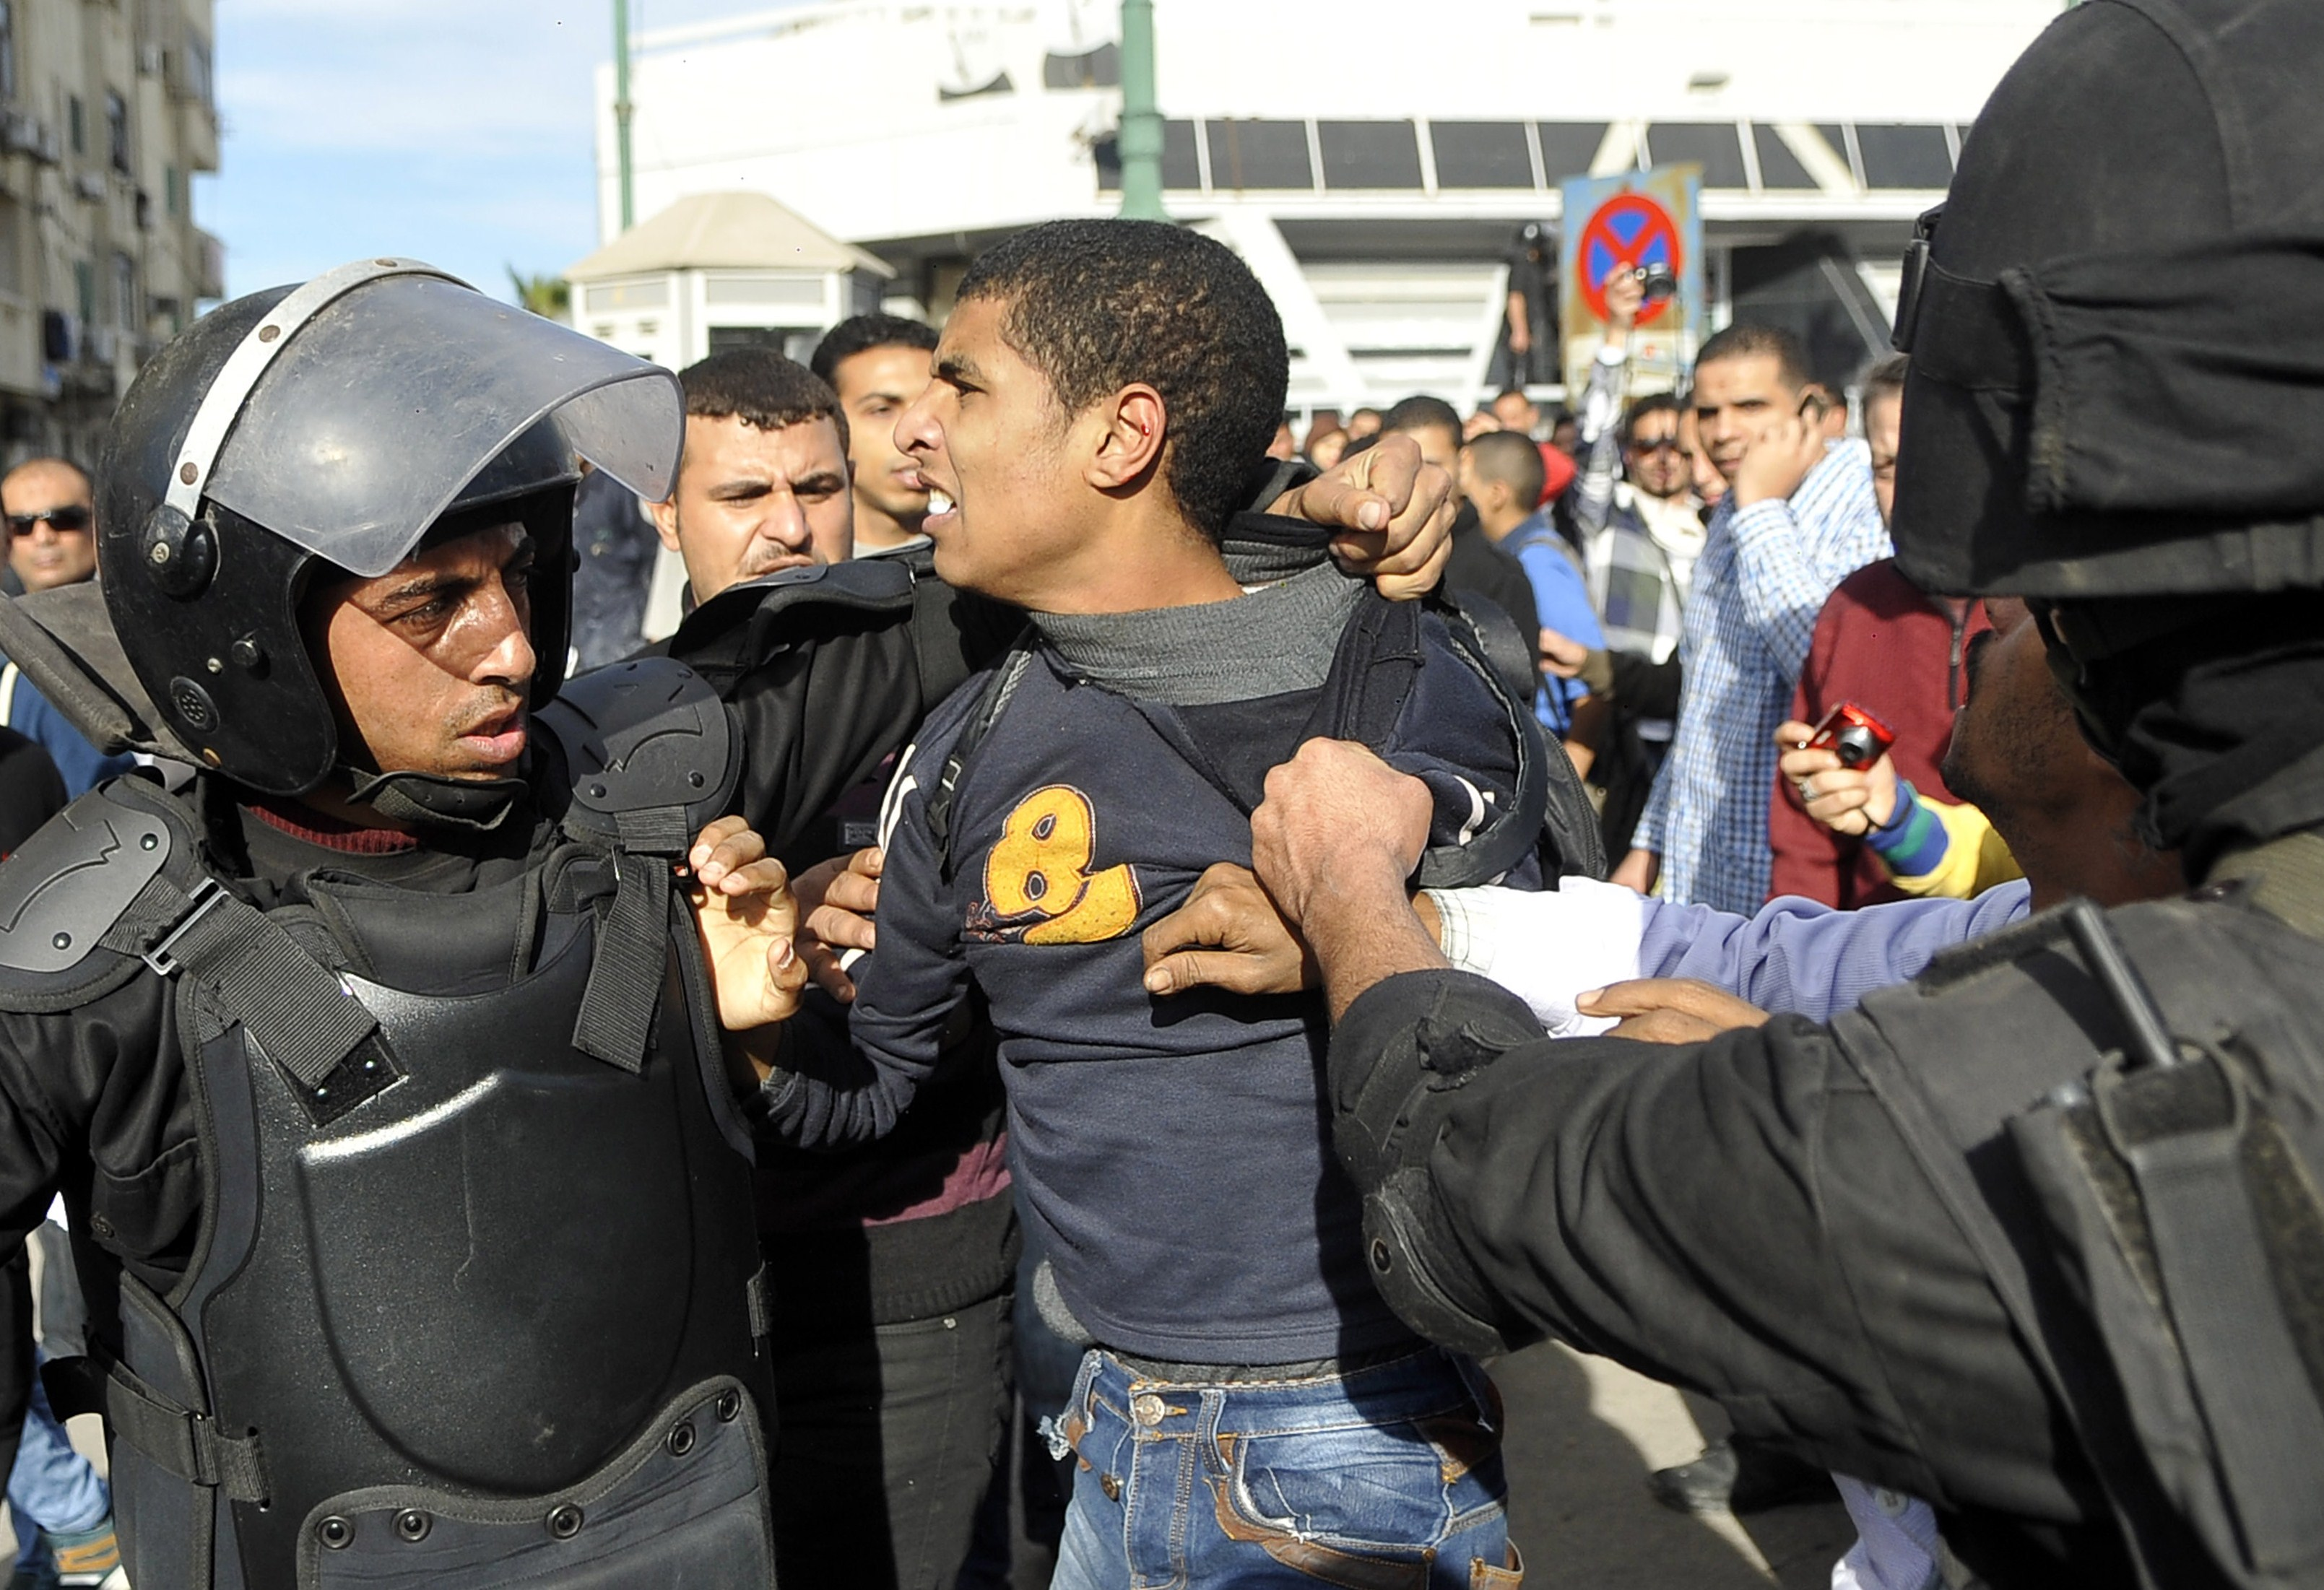 Egyptian police detain a supporter of the Muslim Brotherhood during clashes in the northern port city of Alexandria on January 23, 2014. Clashes between rival Egyptian students at a university in Alexandria killed at least one student, a supporter of ousted Islamist president Mohamed Morsi, police said.  (AFP PHOTO/STR)